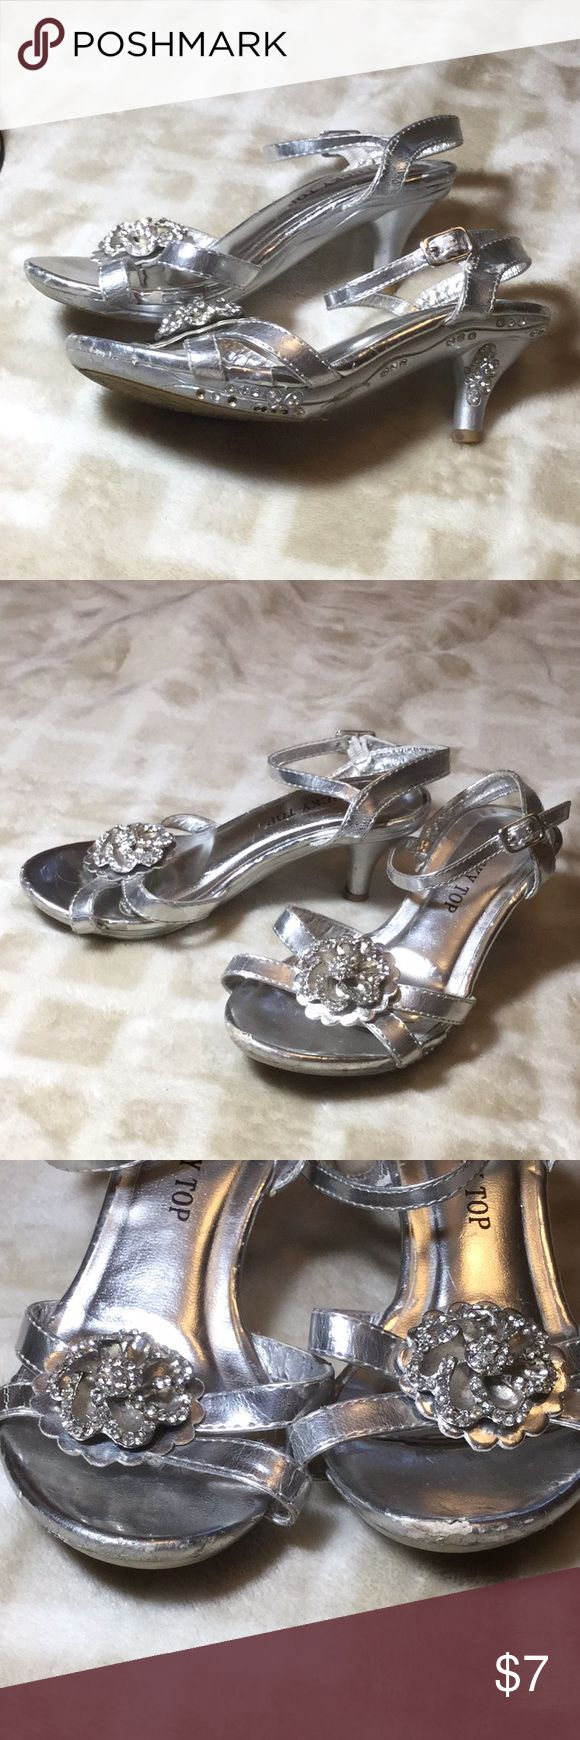 """Silver, Sparkly sandal heels, Size 10 Used, some wear (shown), silver strappy sandal heels (1"""") with buckle closure, Size 10 little girls. Super cute for dress-up or parties. Shoes Dress Shoes"""